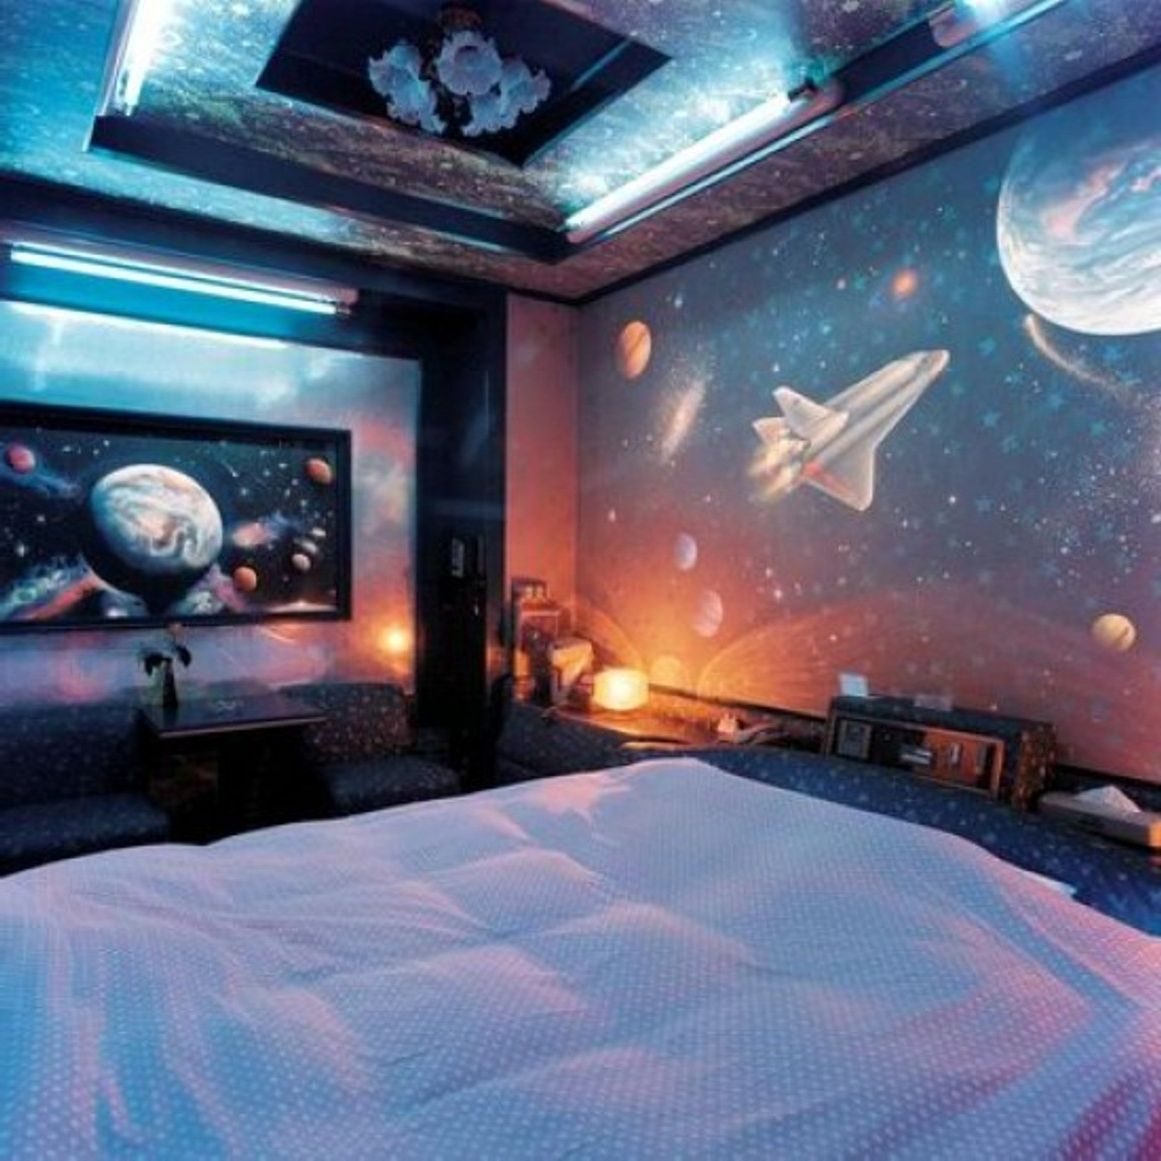 Outer Space Room Decor For Teen: SPACE THEMED INTERIOR DESIGN - Google Search